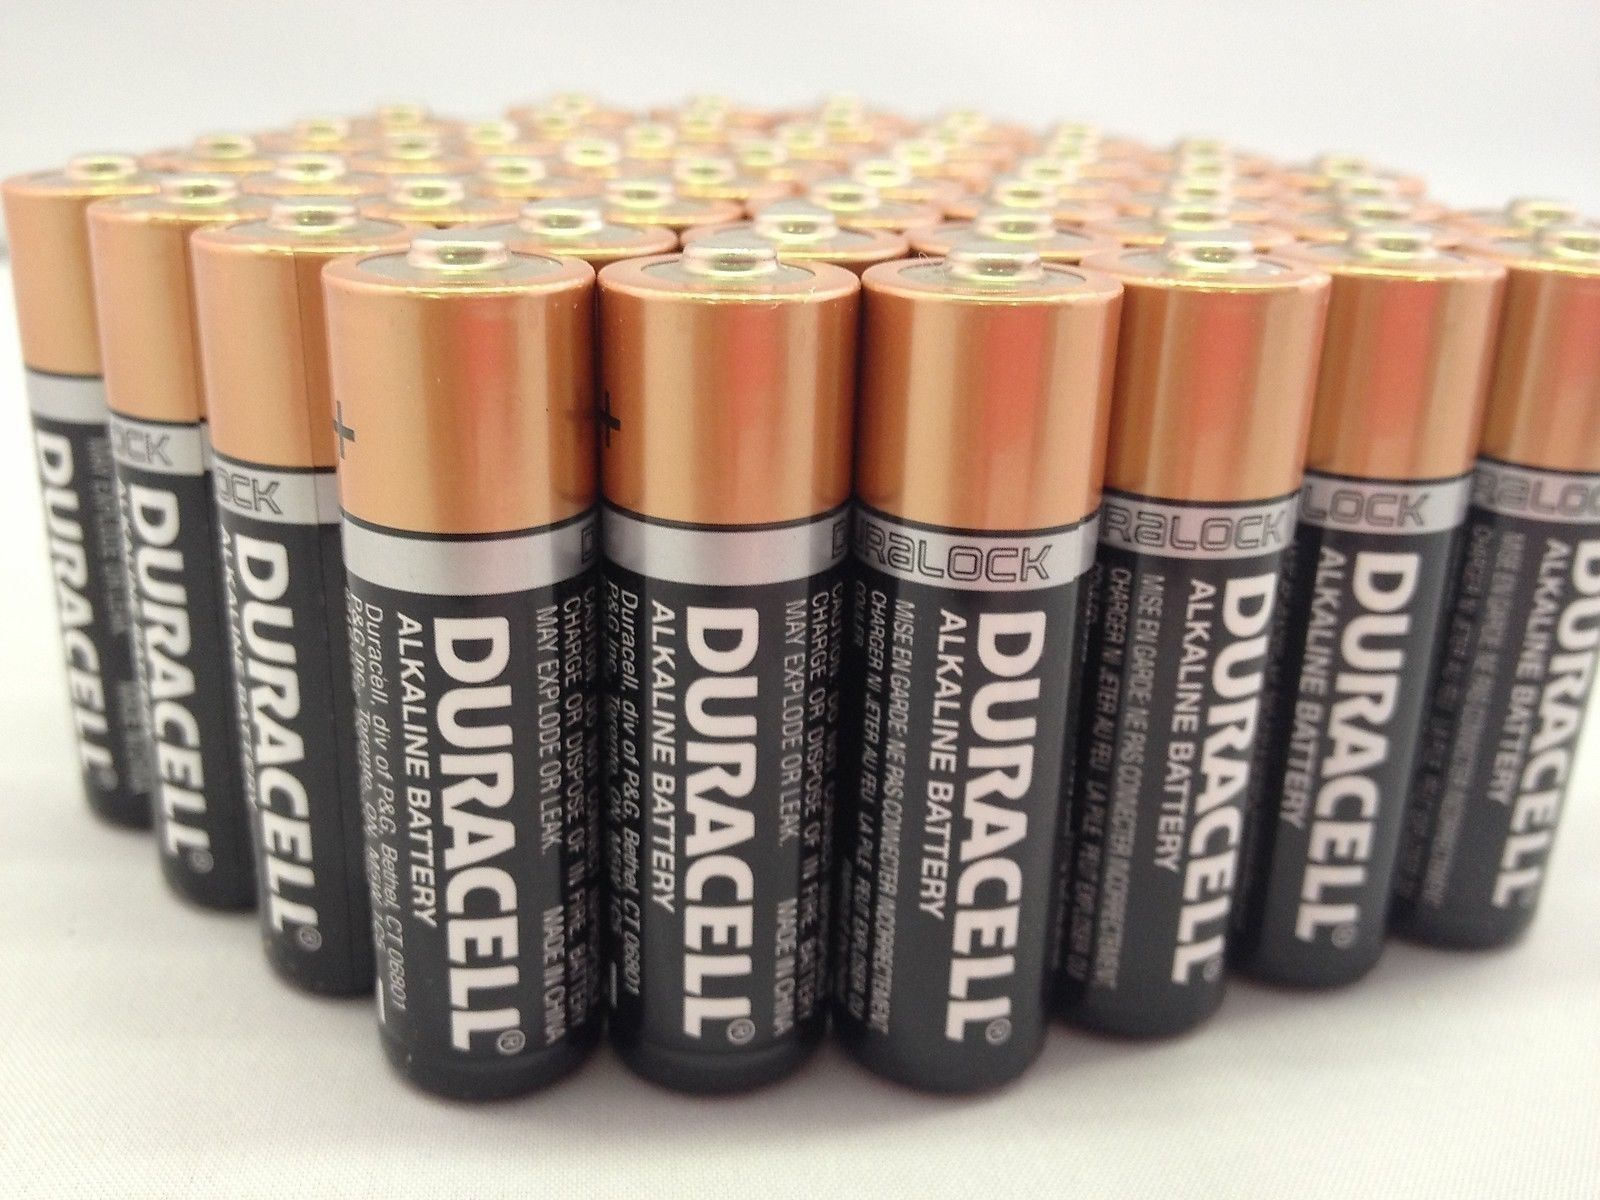 20 Pack of Duracell MN1500 AA 1.5V Alkaline Coppertop ...